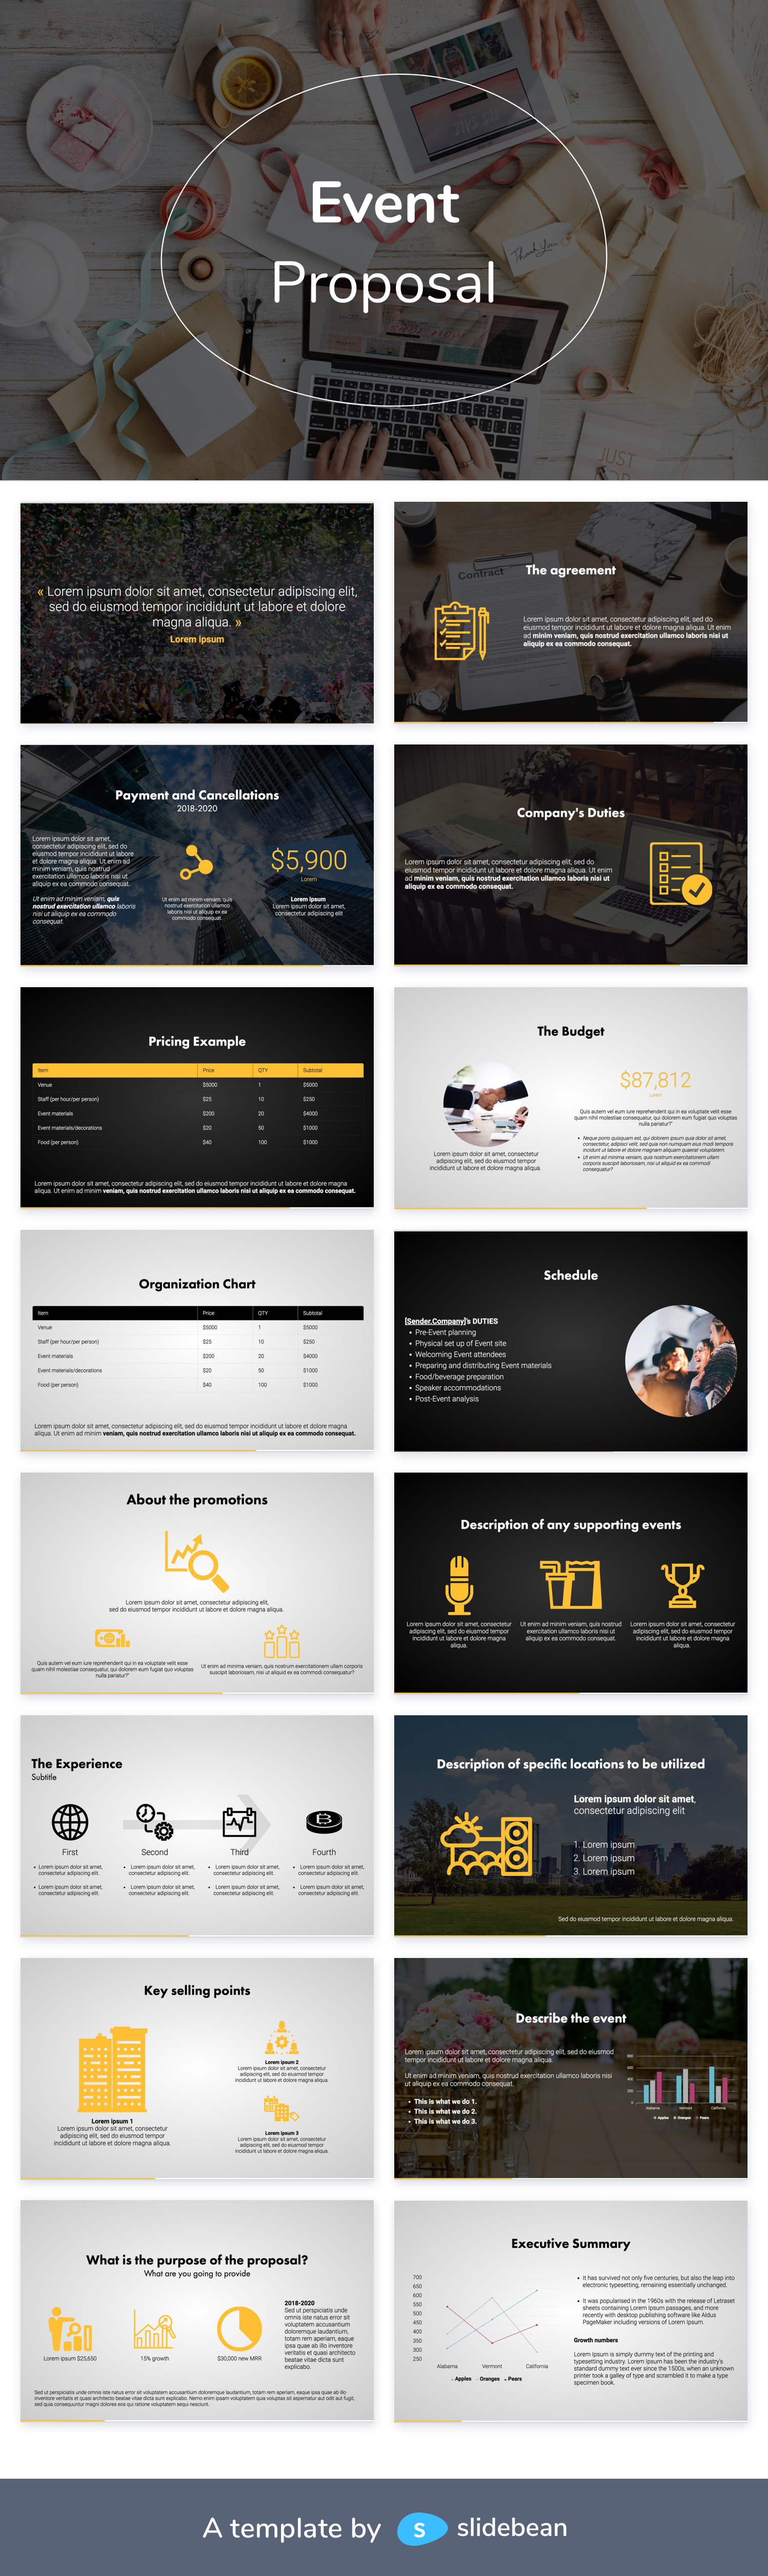 Event Proposal Template Free Pdf Ppt Download Slidebean Event Proposal Template Event Proposal Proposal Templates